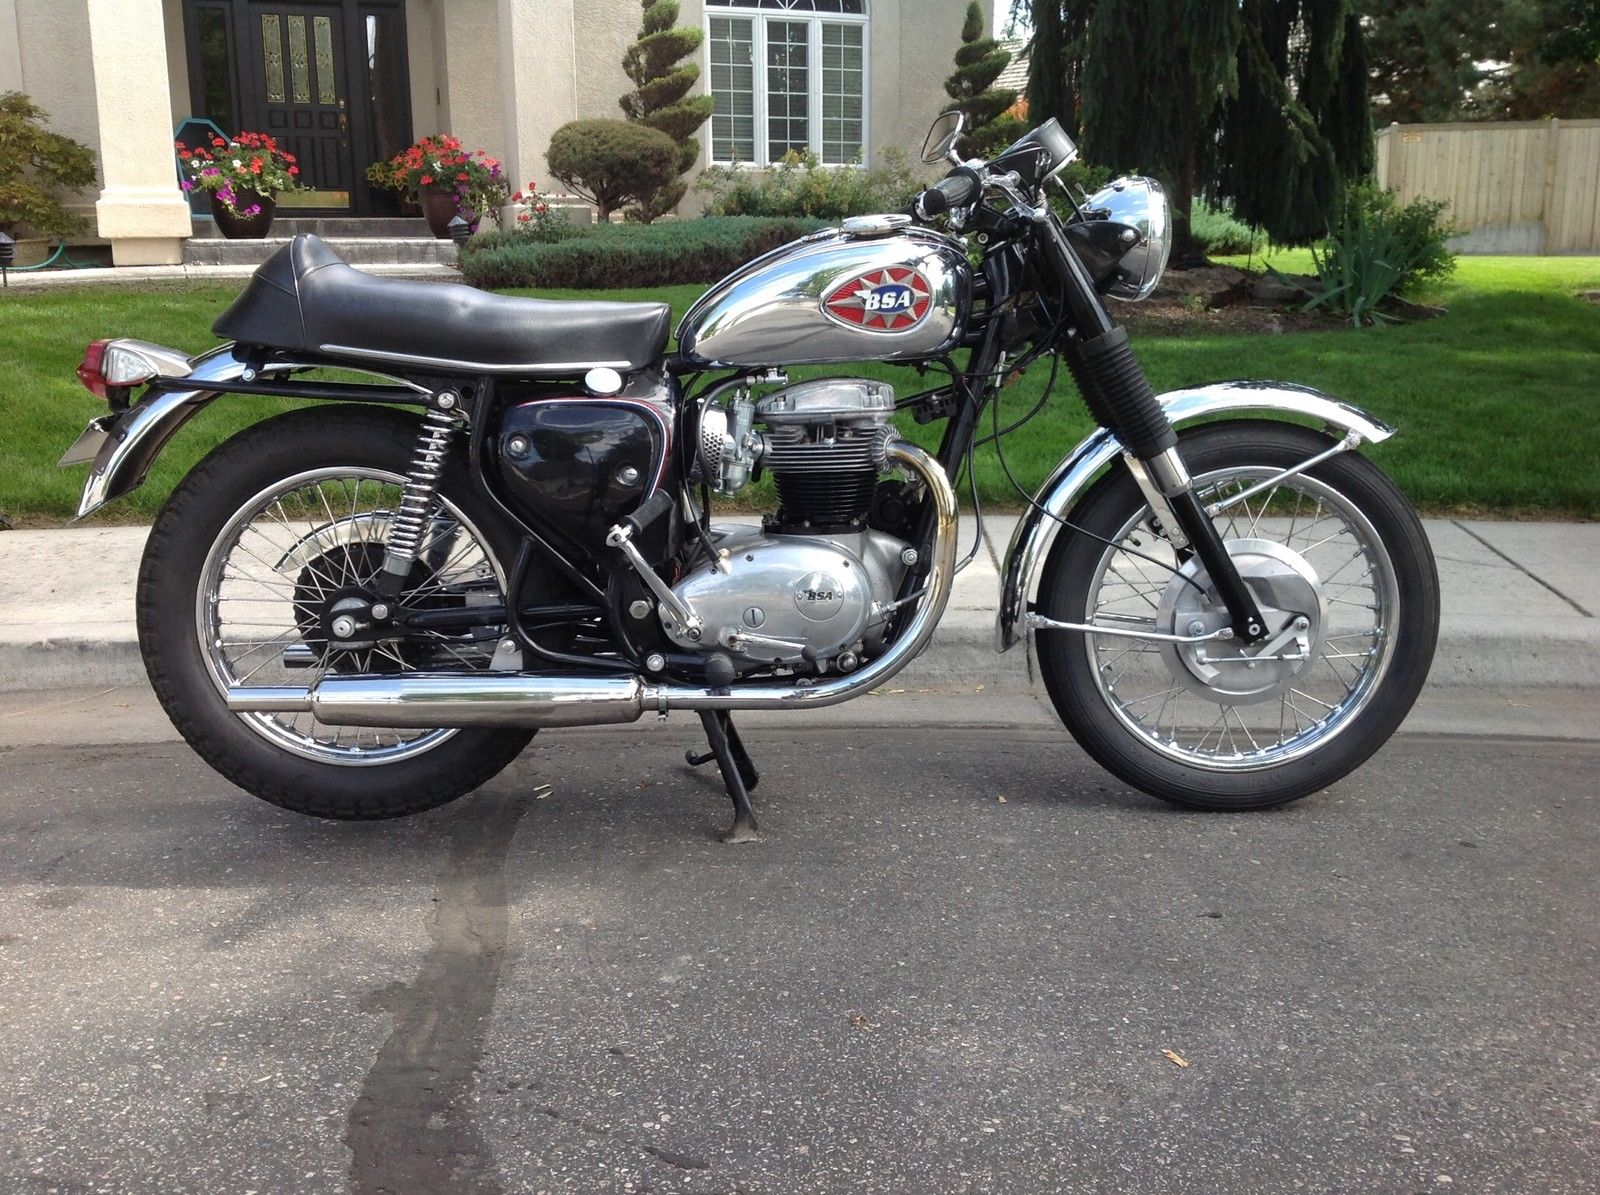 BSA A65 Lightning - 1969 - Motor and Transmission, Petrol Tank, Oil Tank and Exhaust.